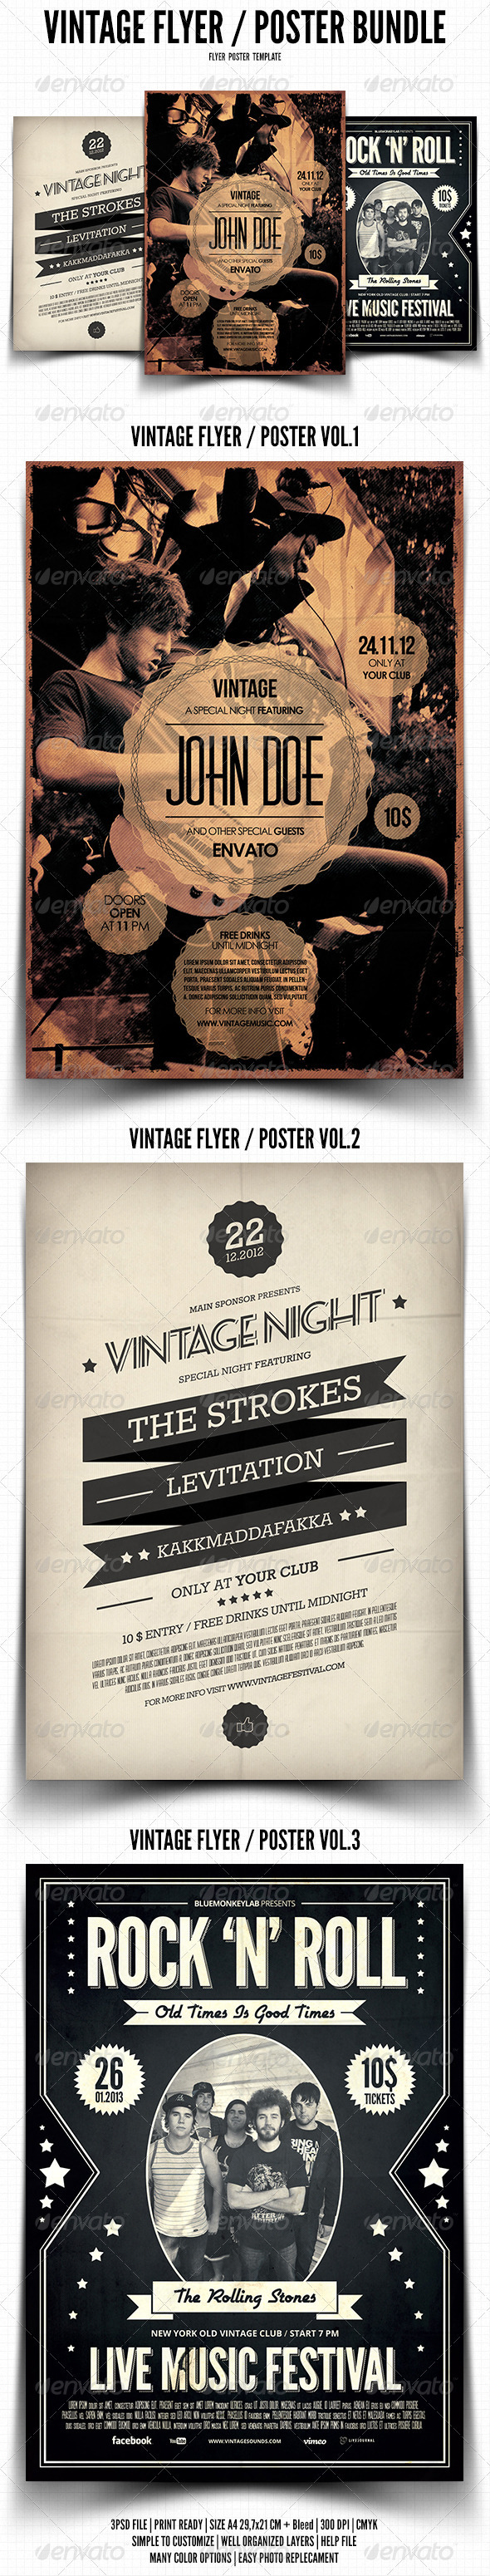 GraphicRiver Vintage Flyer Poster Bundle 3891900